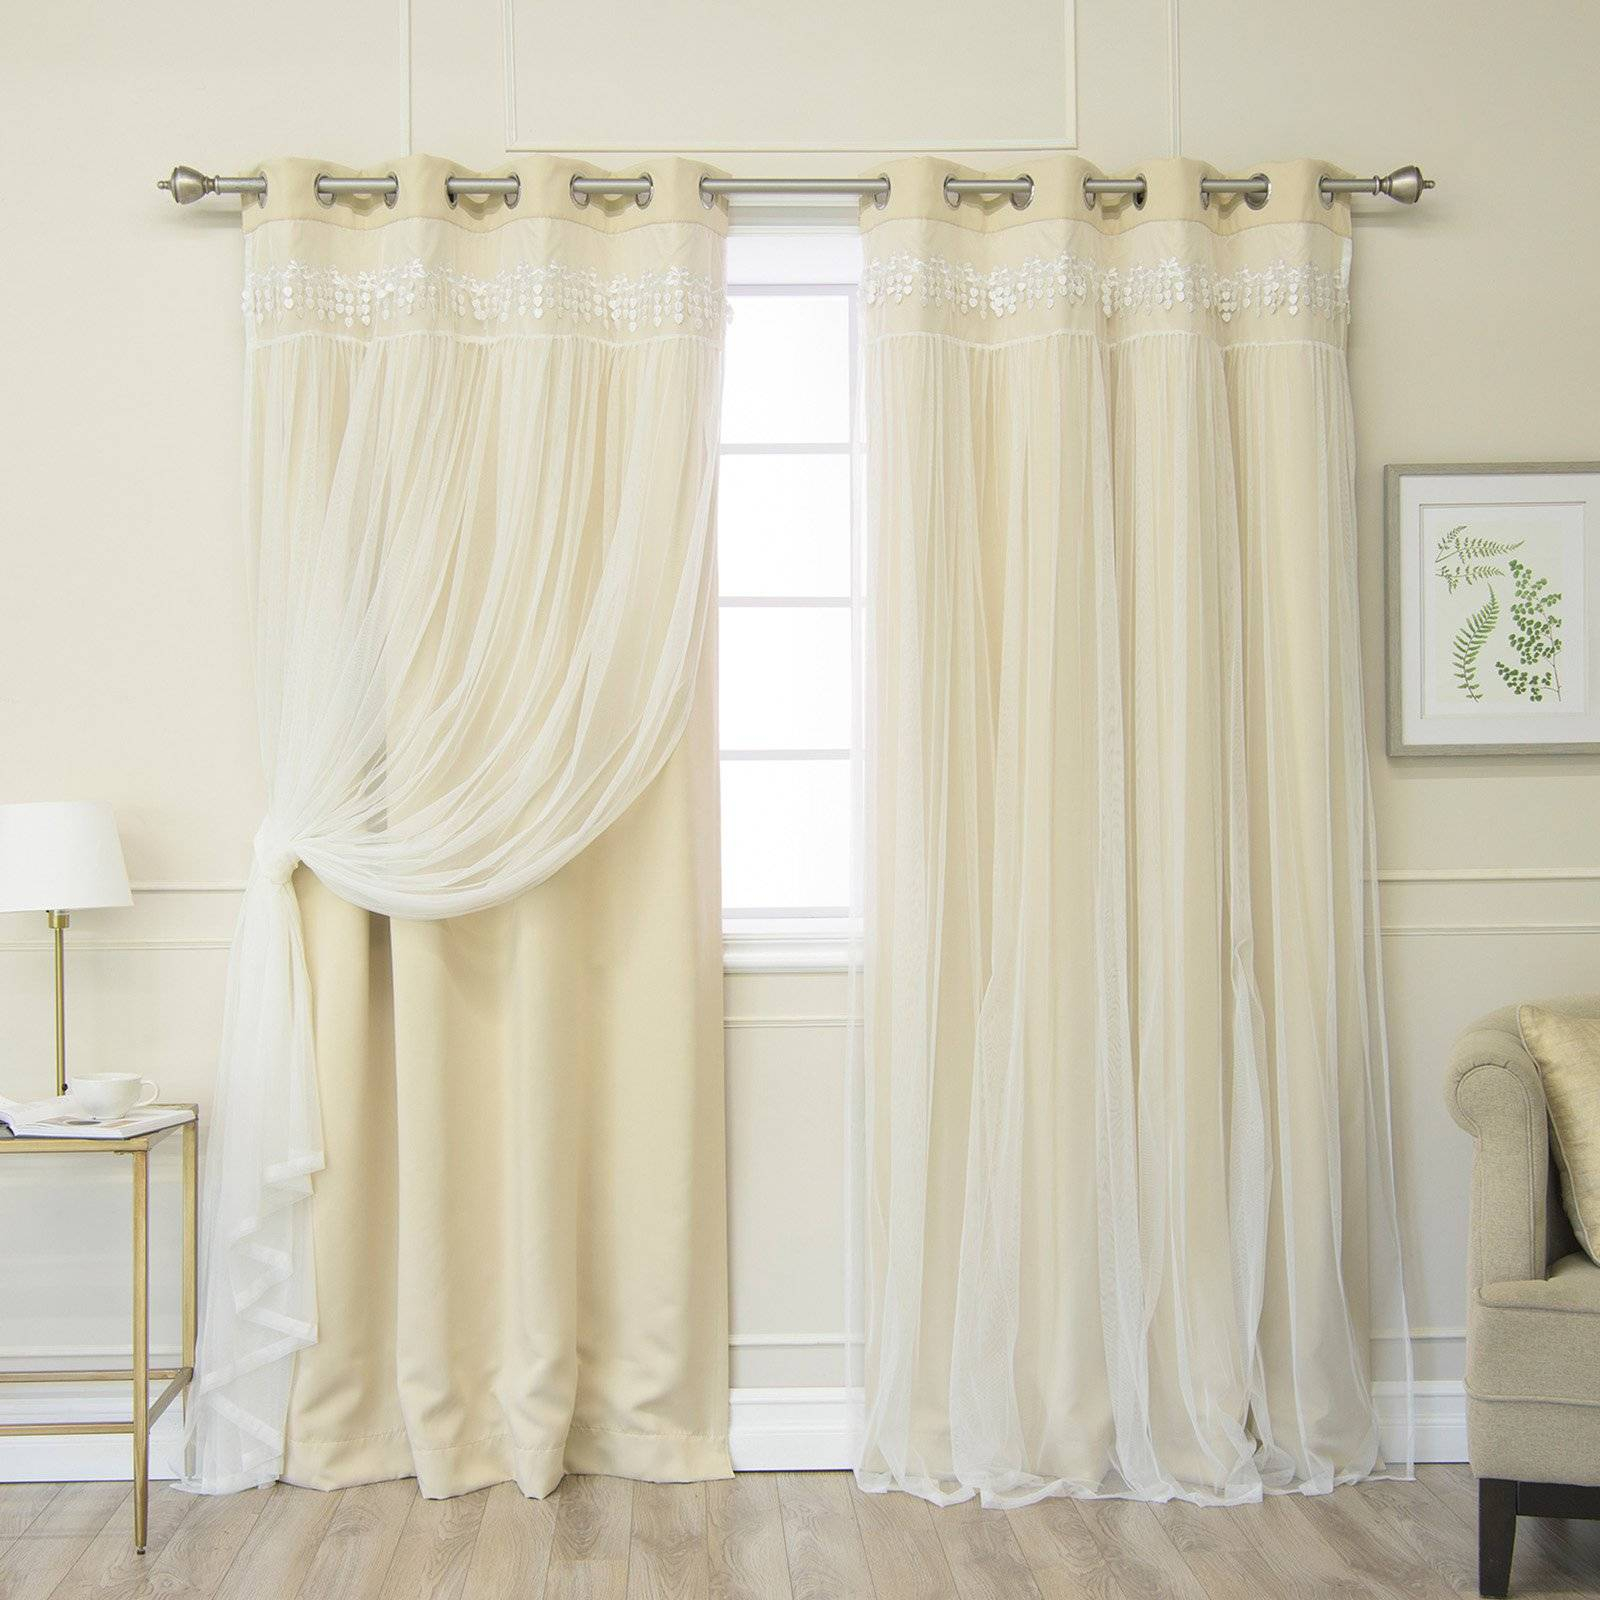 Pretty Country Lace Curtains Swags For Living Room Catalog Within Sheer Lace Elongated Kitchen Curtain Tier Pairs (View 17 of 20)